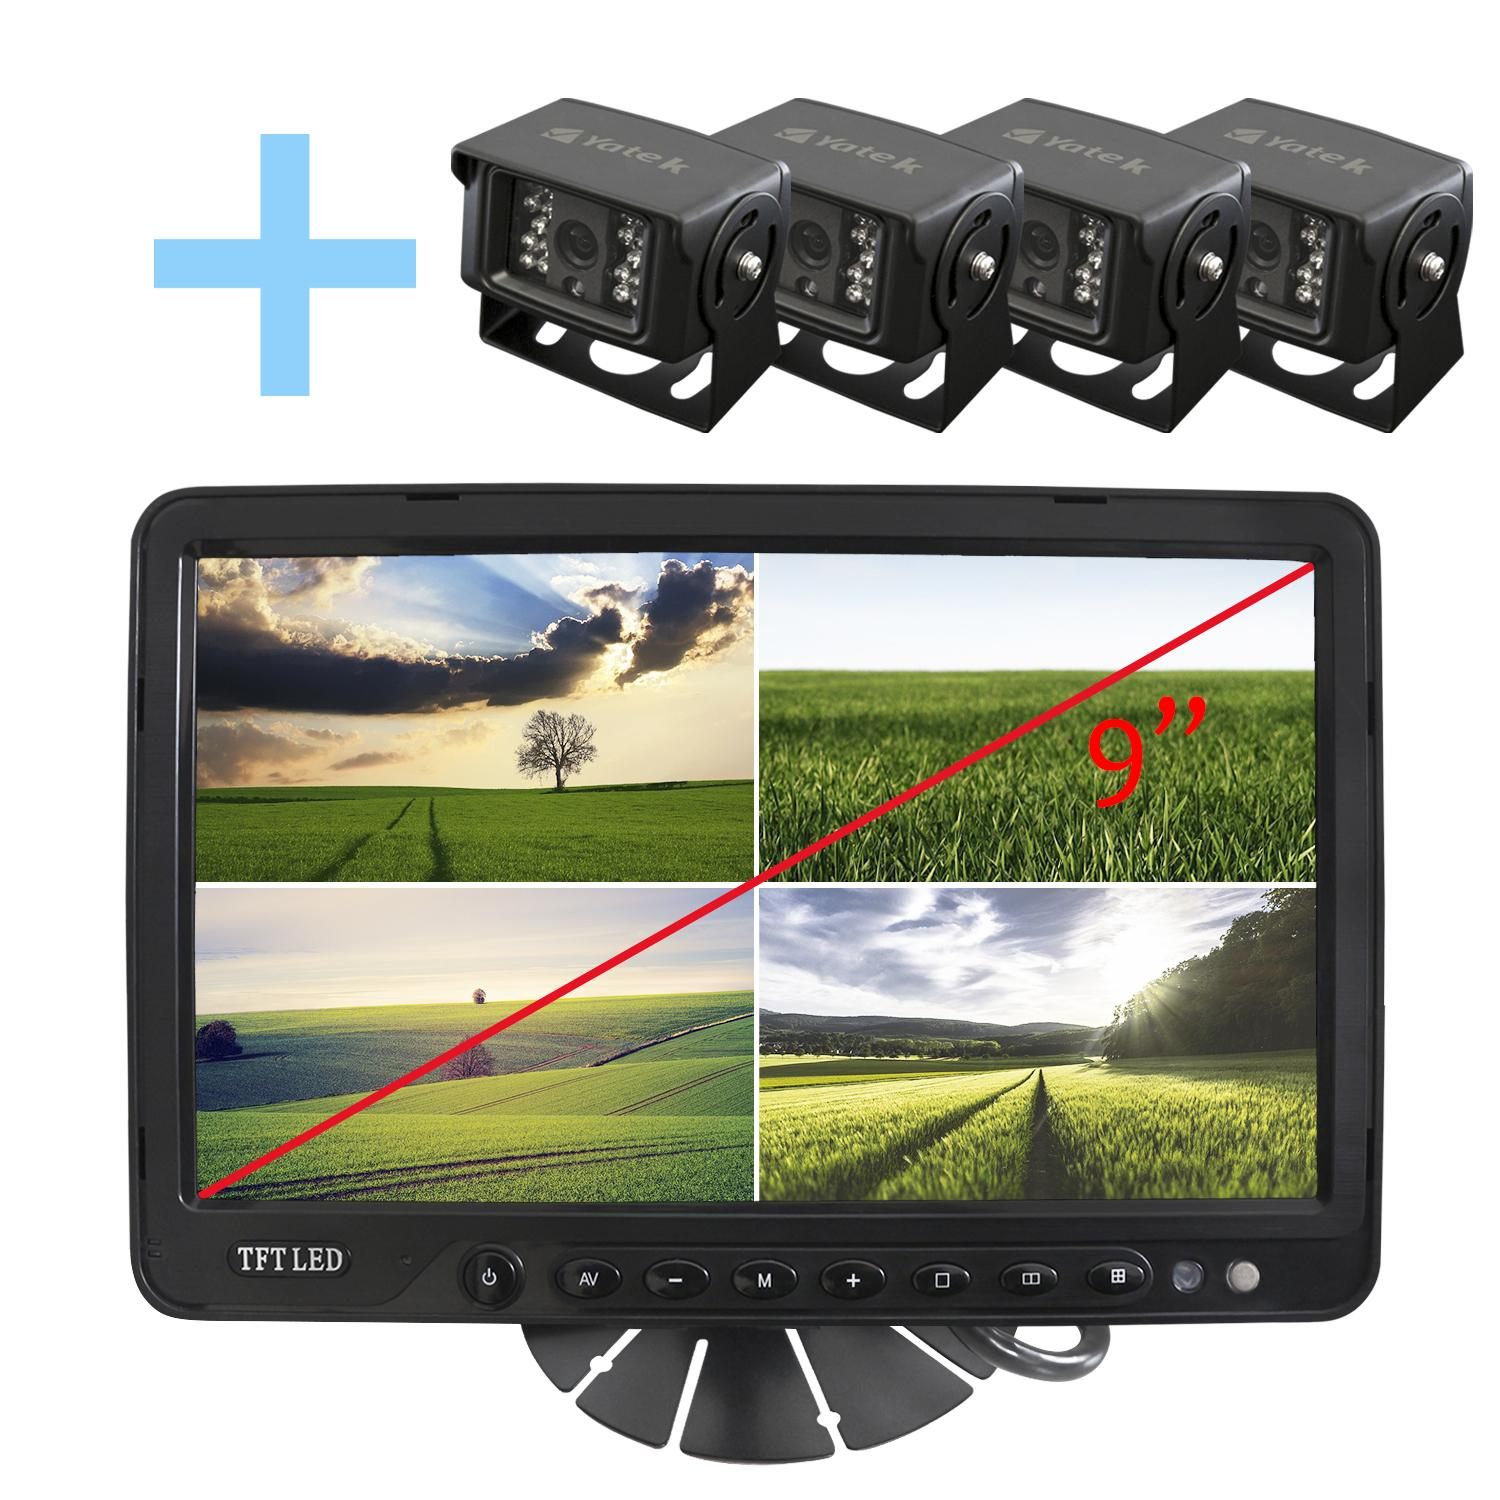 Kit with Screen LCD Quad TFT 9 + 4's still cameras rear vision for optical parking SONY and infrared